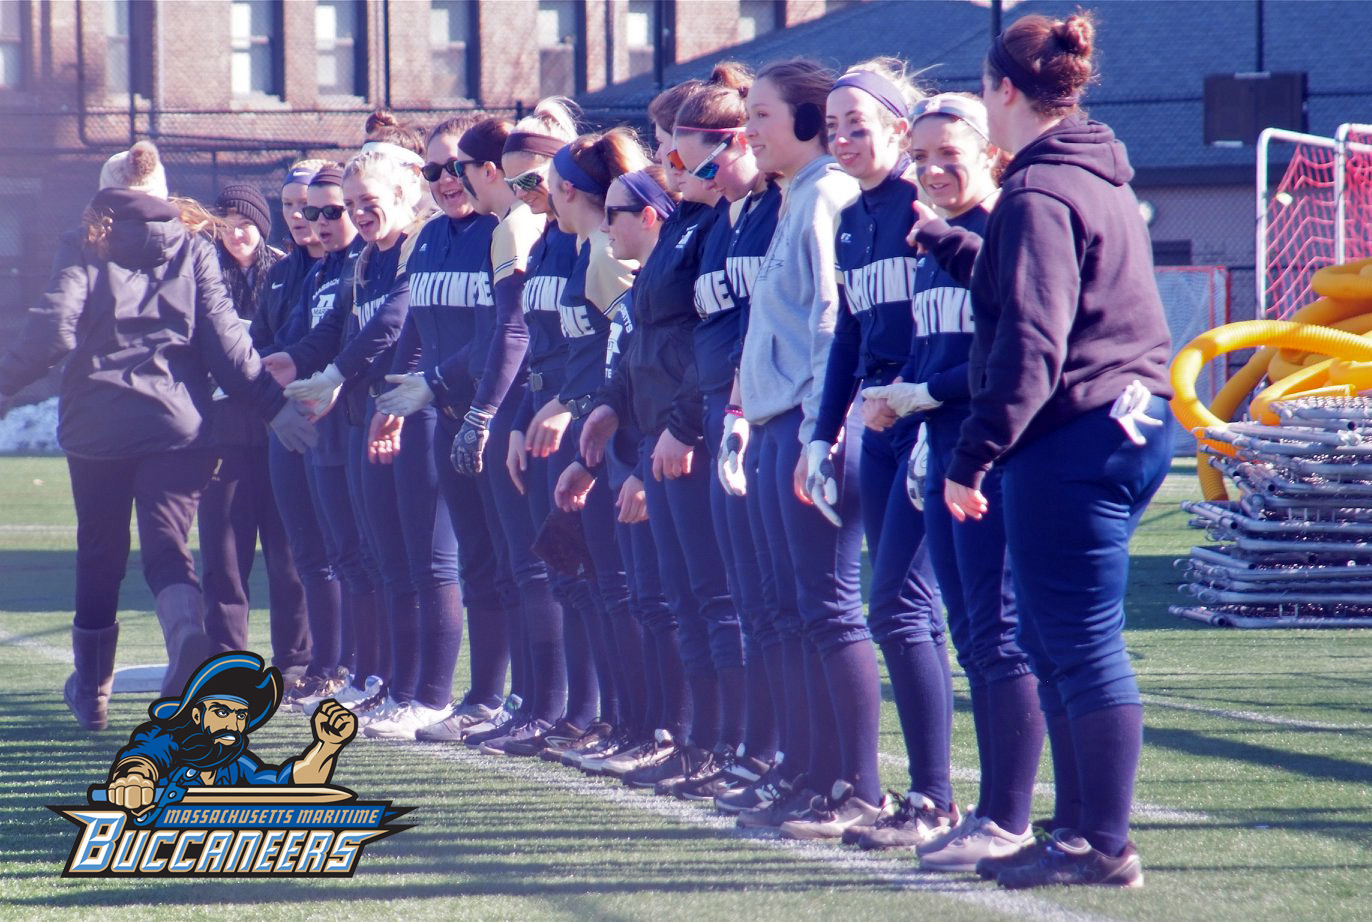 Softball Season Ends with Doubleheader Loss to Worcester